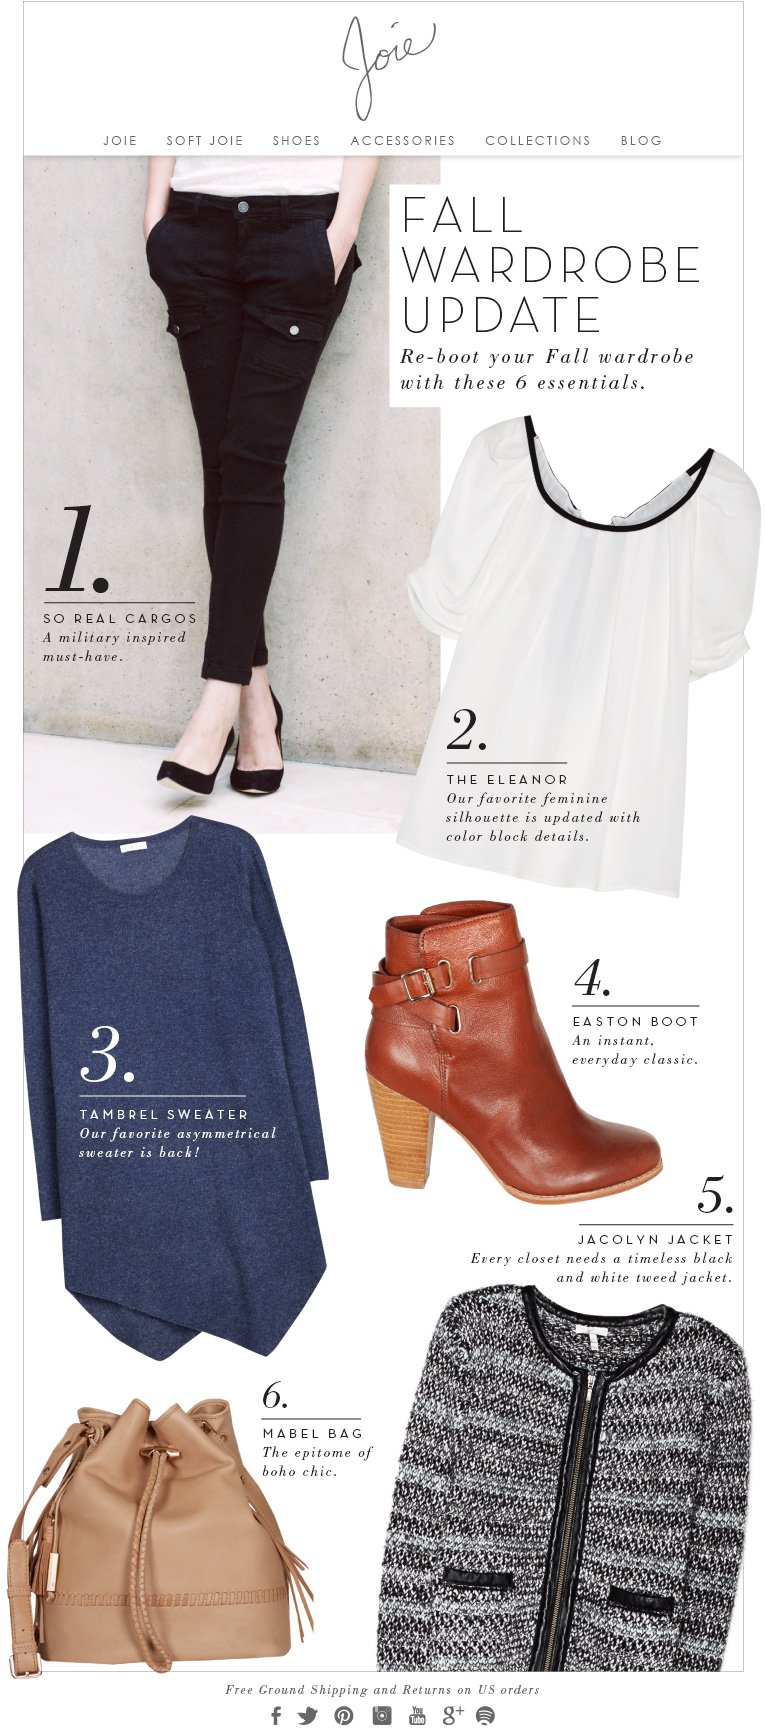 JOIE | FALL WARDROBE UPDATE. Re-boot your Fall wardrobe with these 6 essentials.